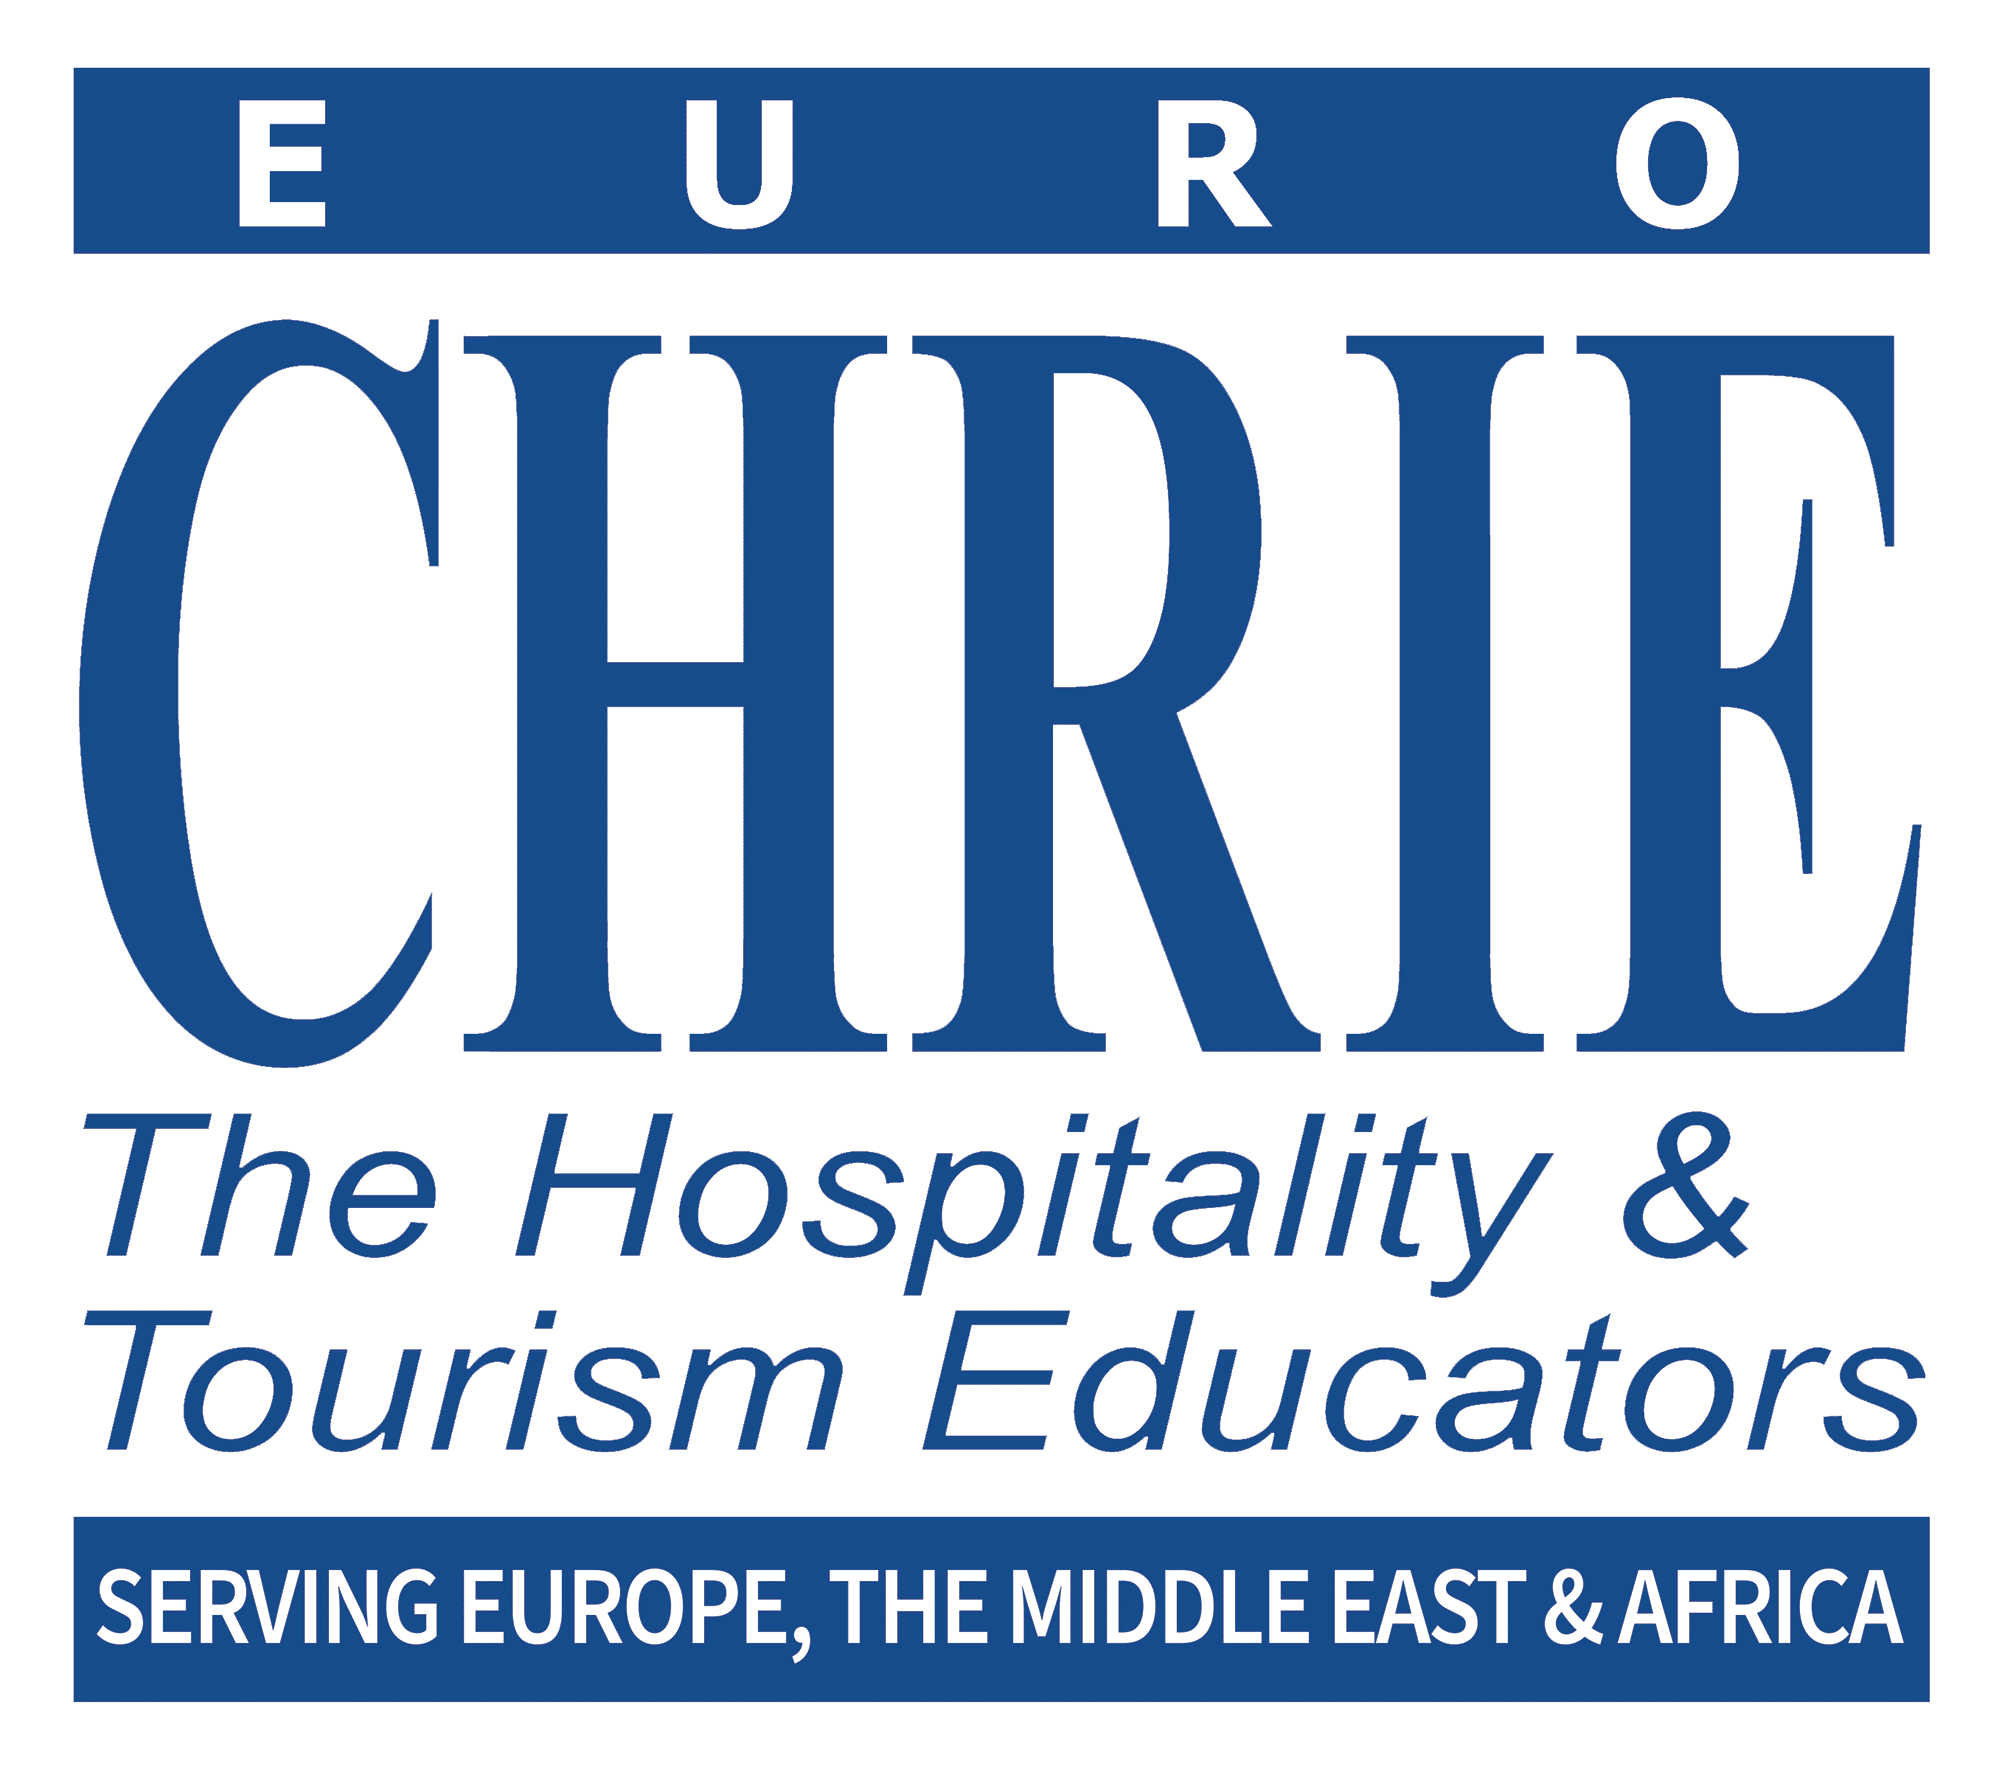 A 'How To' Guide in Hosting a EuroCHRIE Conference 4